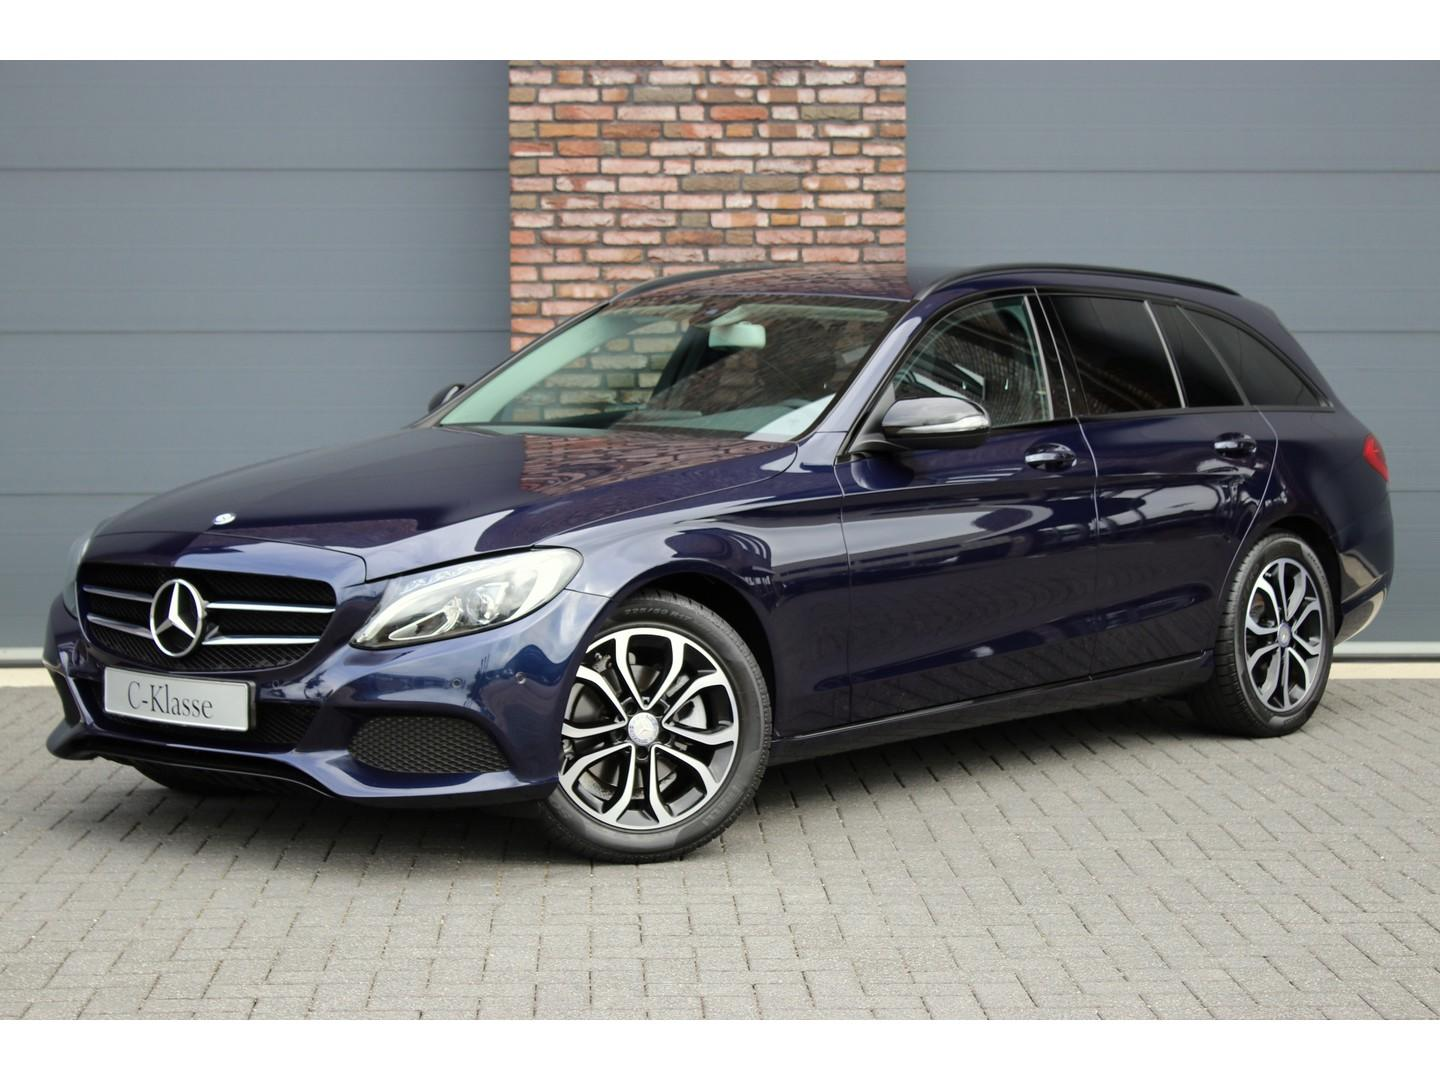 Mercedes-benz C-klasse Estate 200 d avantgarde, navigatie, bluetooth, night-pakket, led high perf., stoelverwarming, parkeer-assistent, etc.